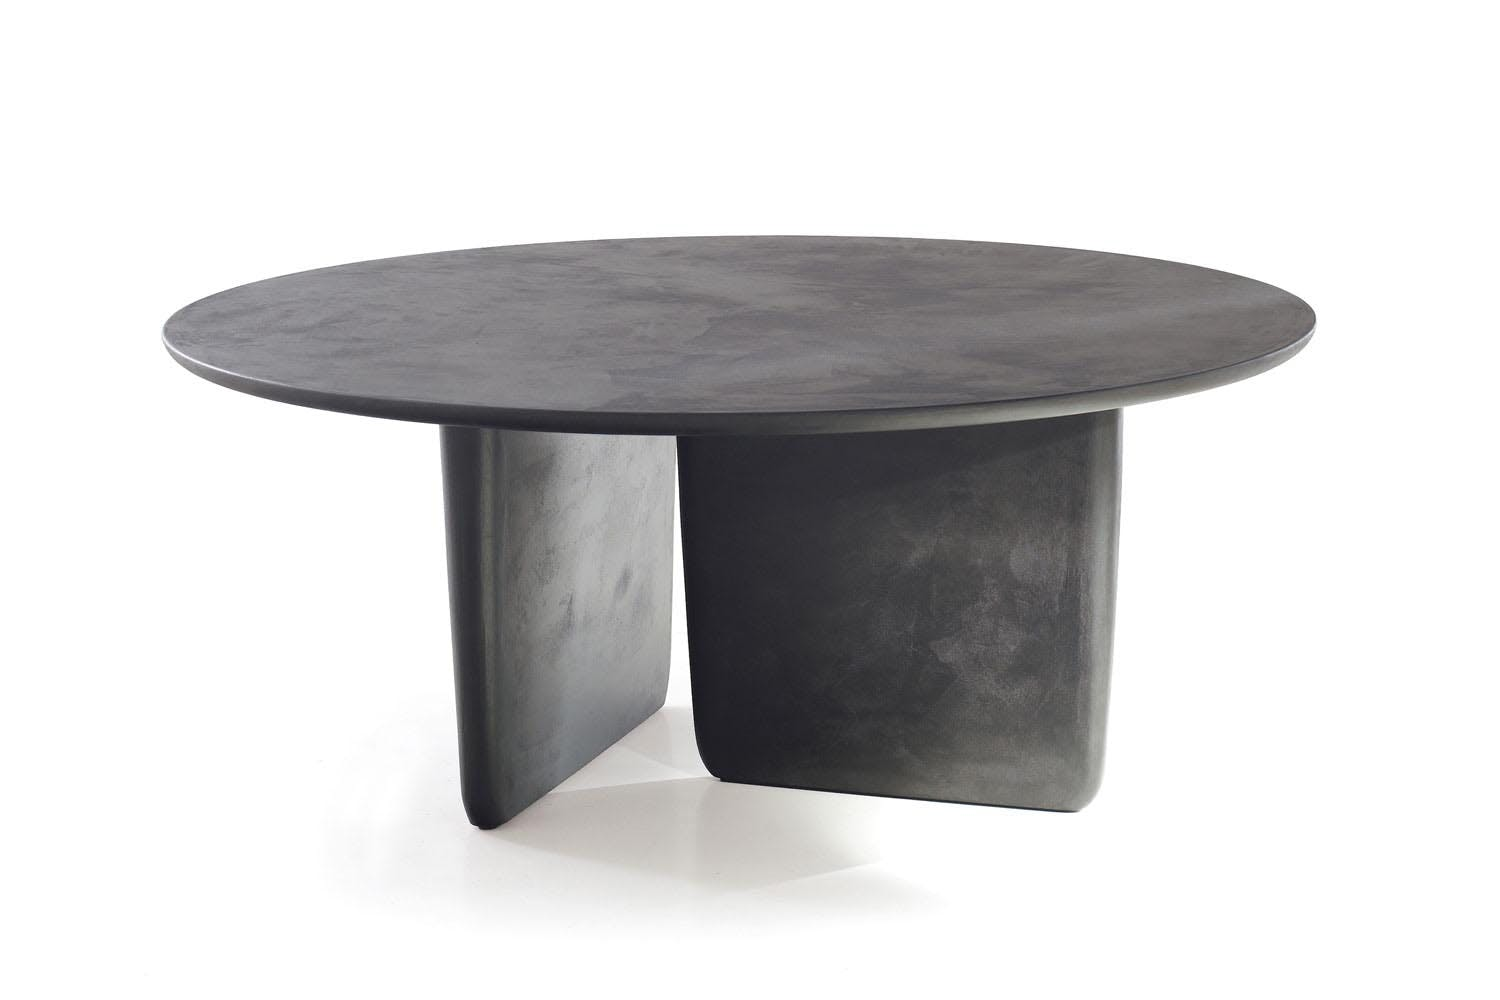 Tobi ishi table by edward barber jay osgerby for b b - Table ronde extensible 10 personnes ...